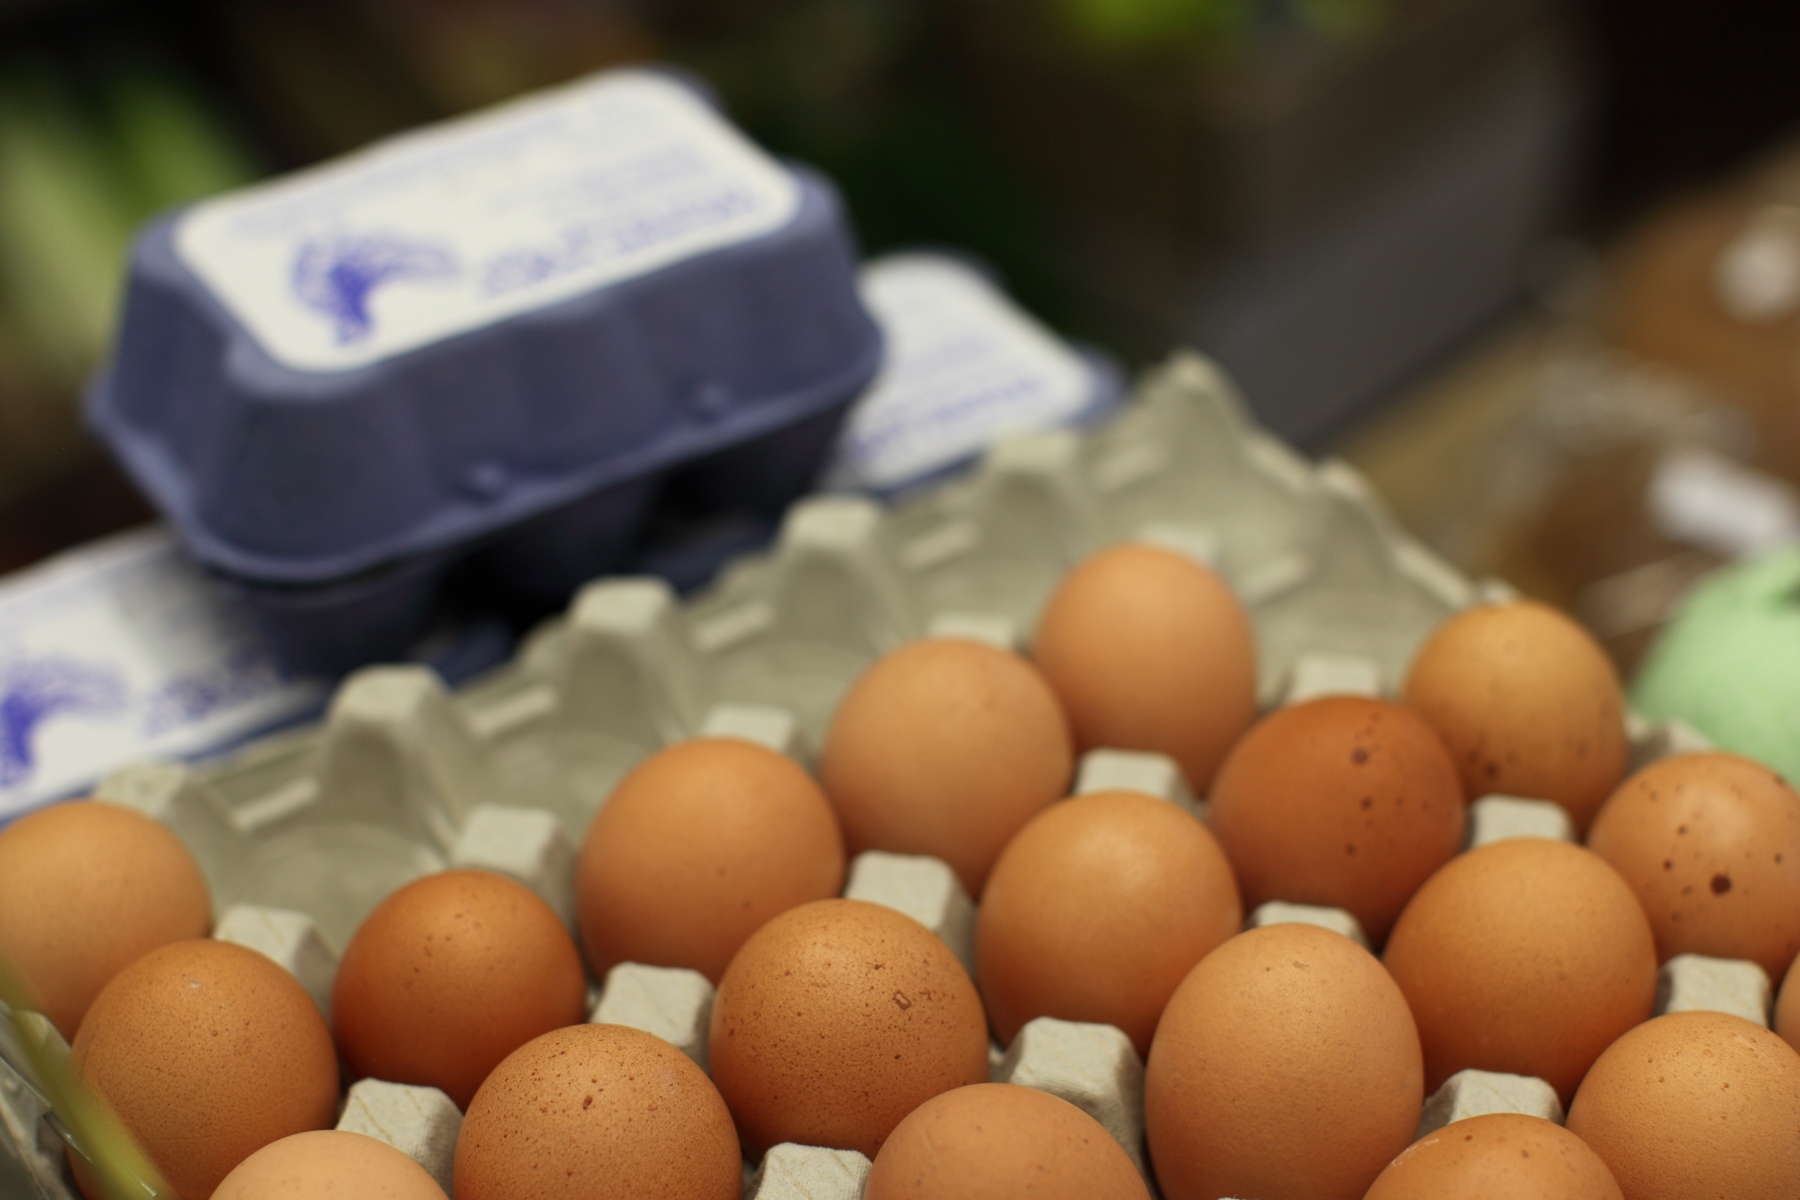 A photograph of eggs sitting in a tray